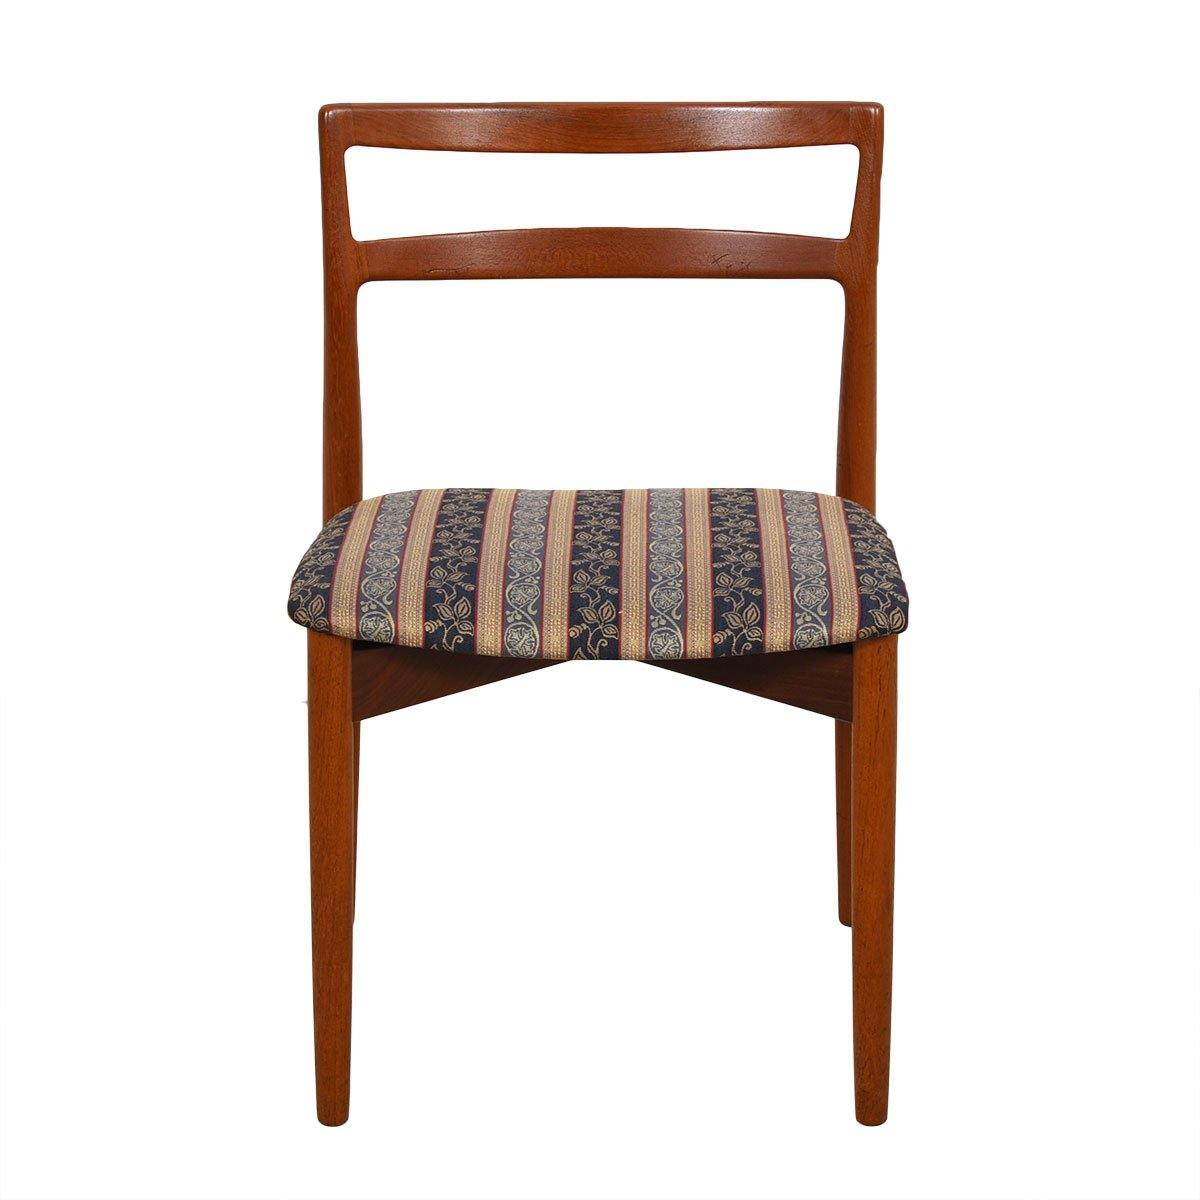 Set of 6 Harry Ostergaard for Randers Danish Teak Dining Chairs